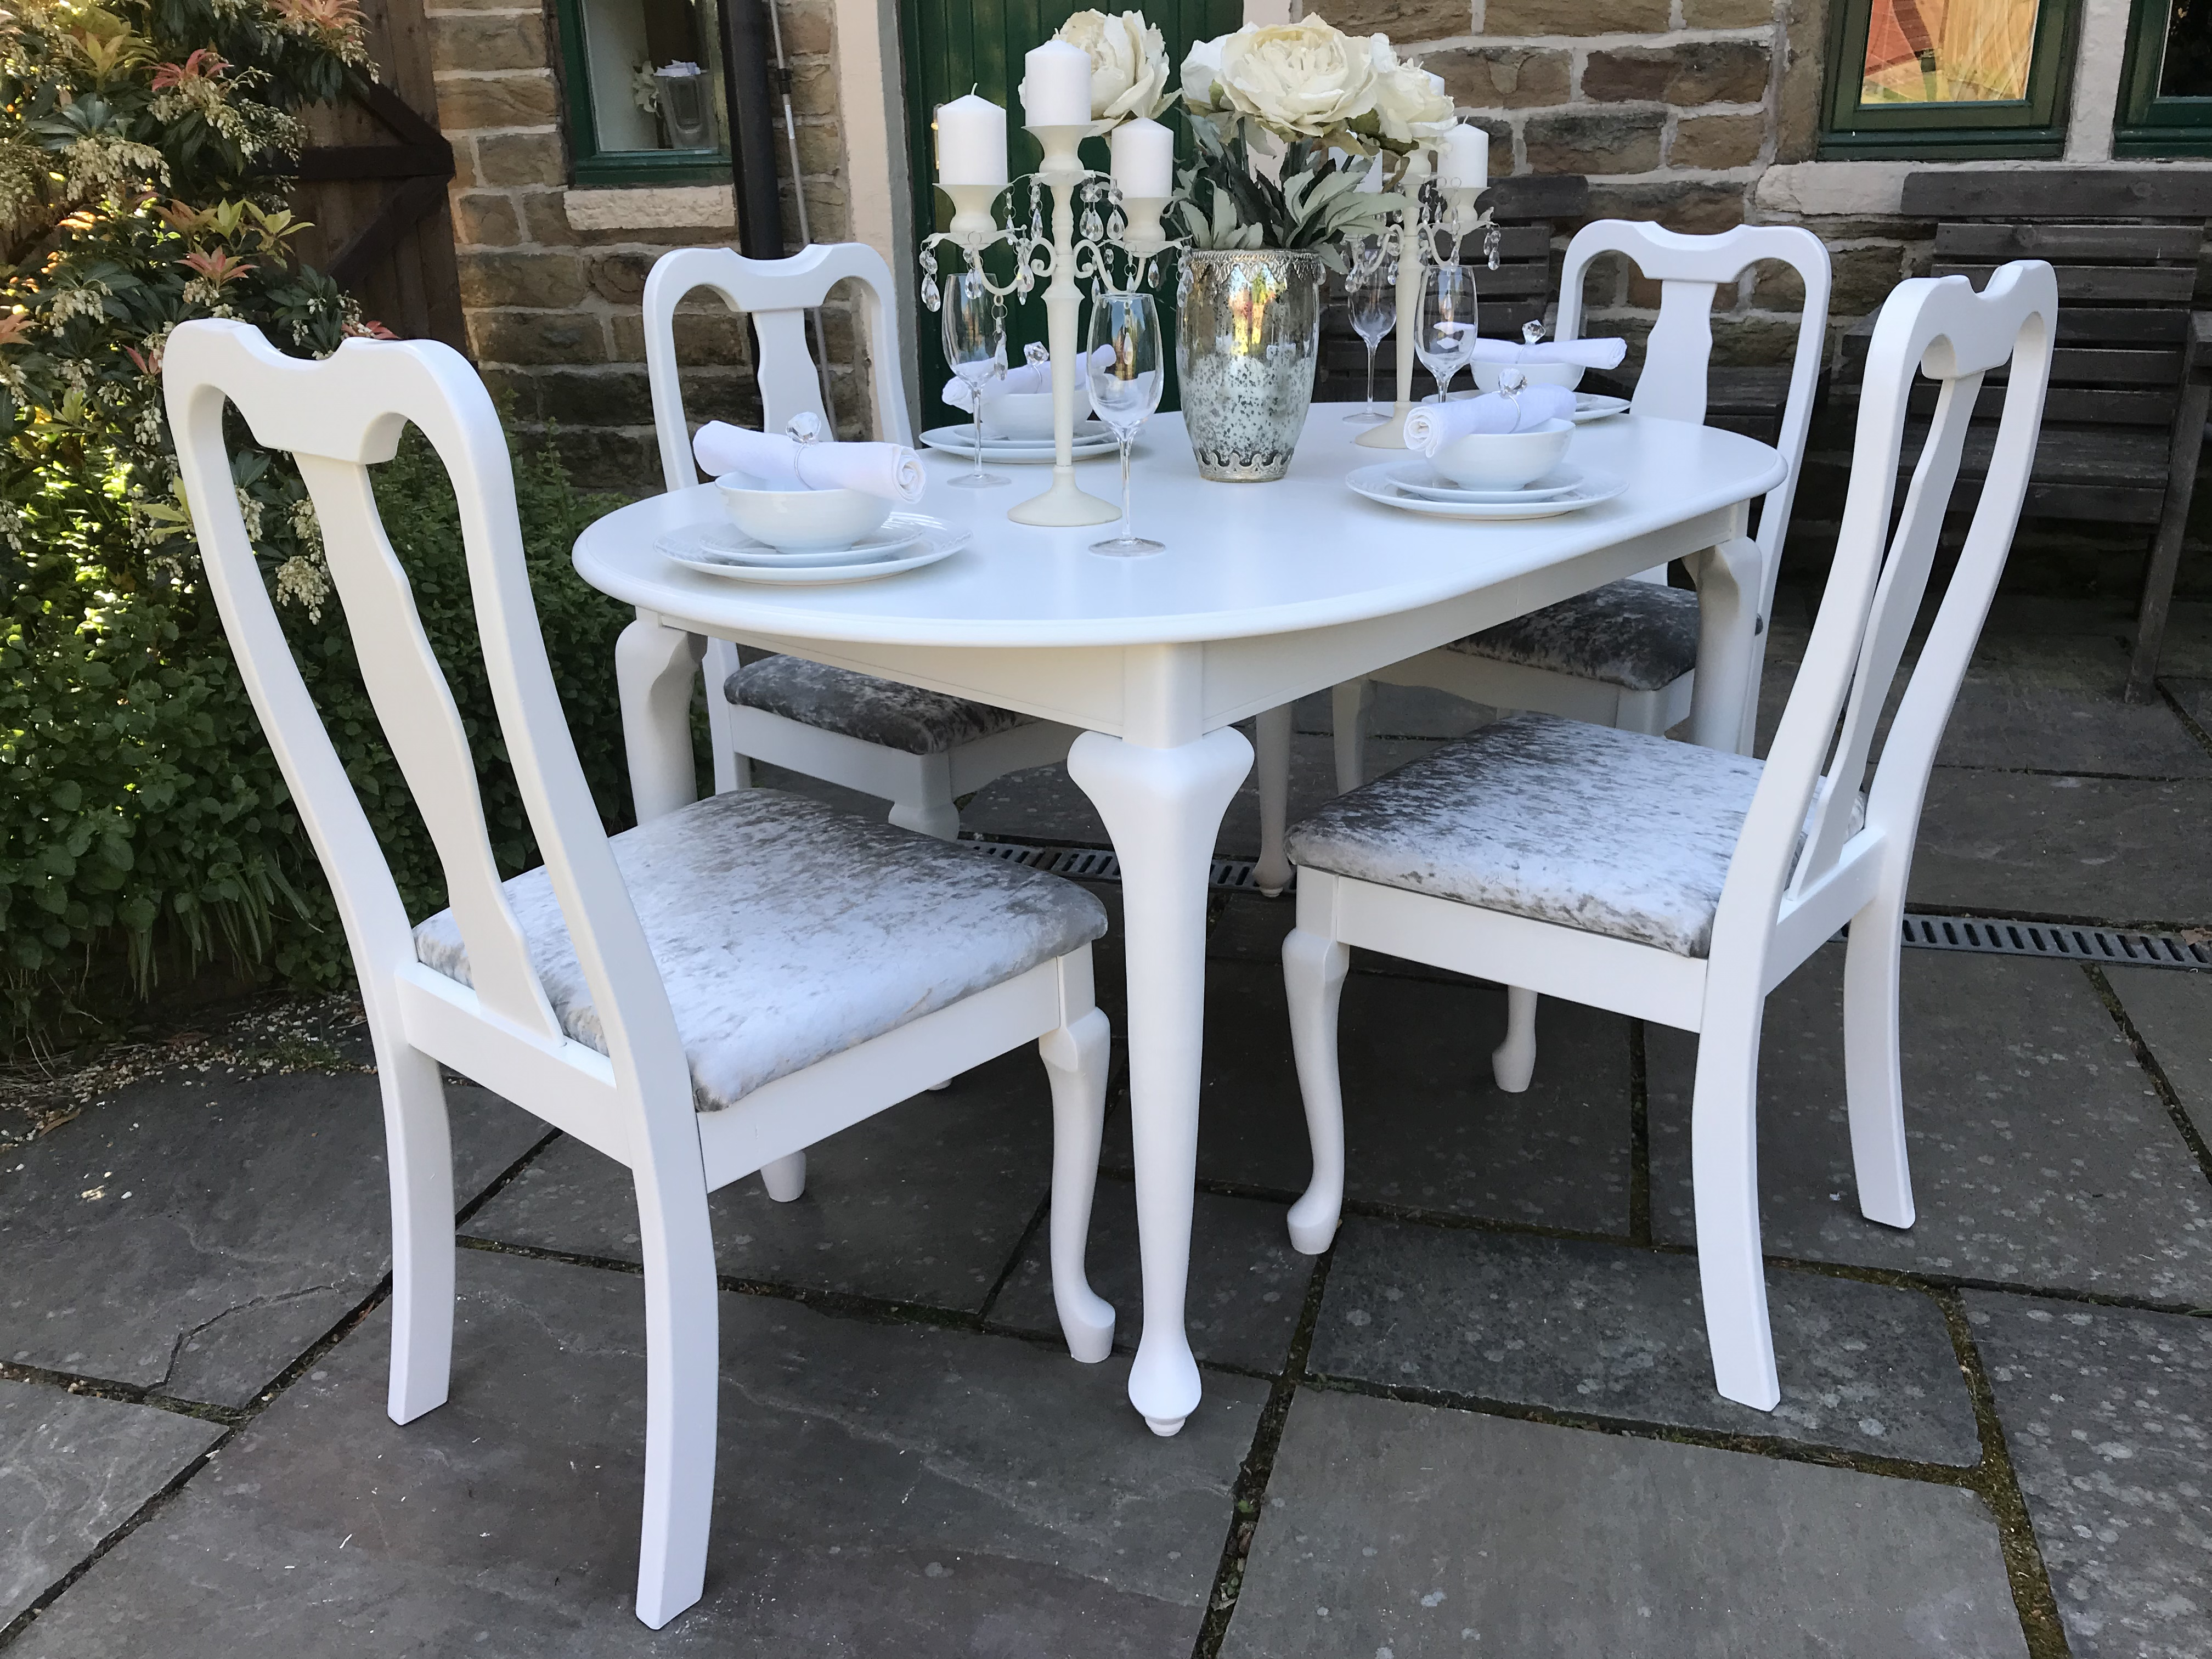 Queen Anne Dining Table & 4 Chairs